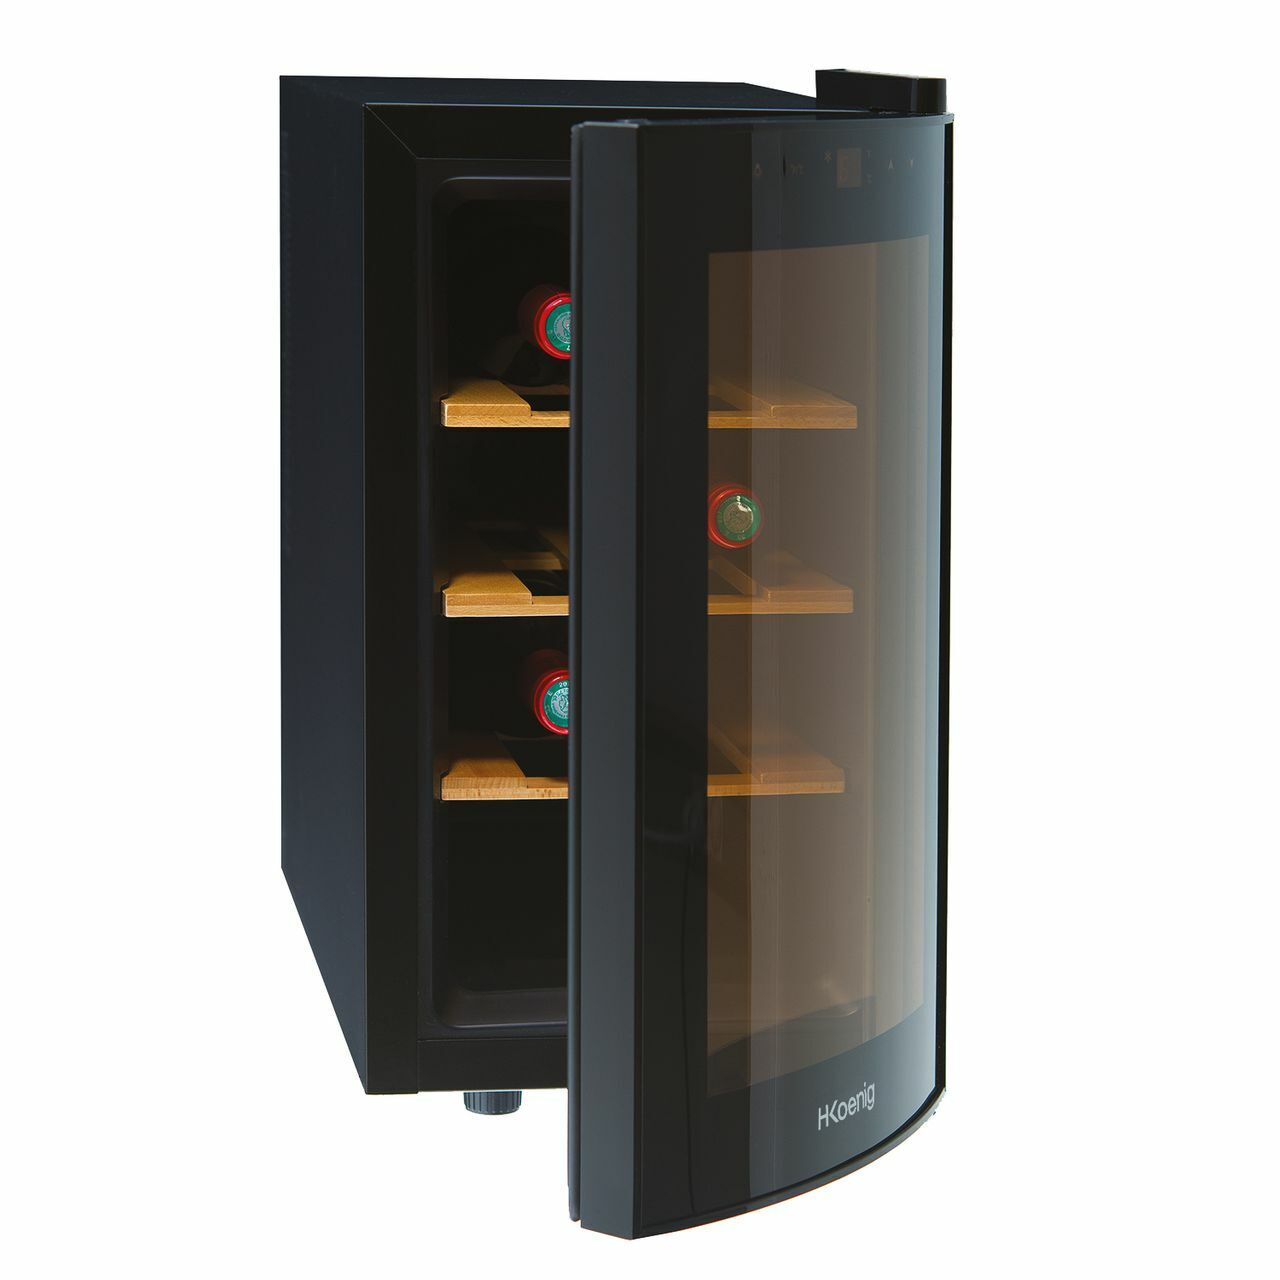 Wine Fridge For 8 Bottle Hkoenig AGE8WV EEK B (Spektrum: a To D)